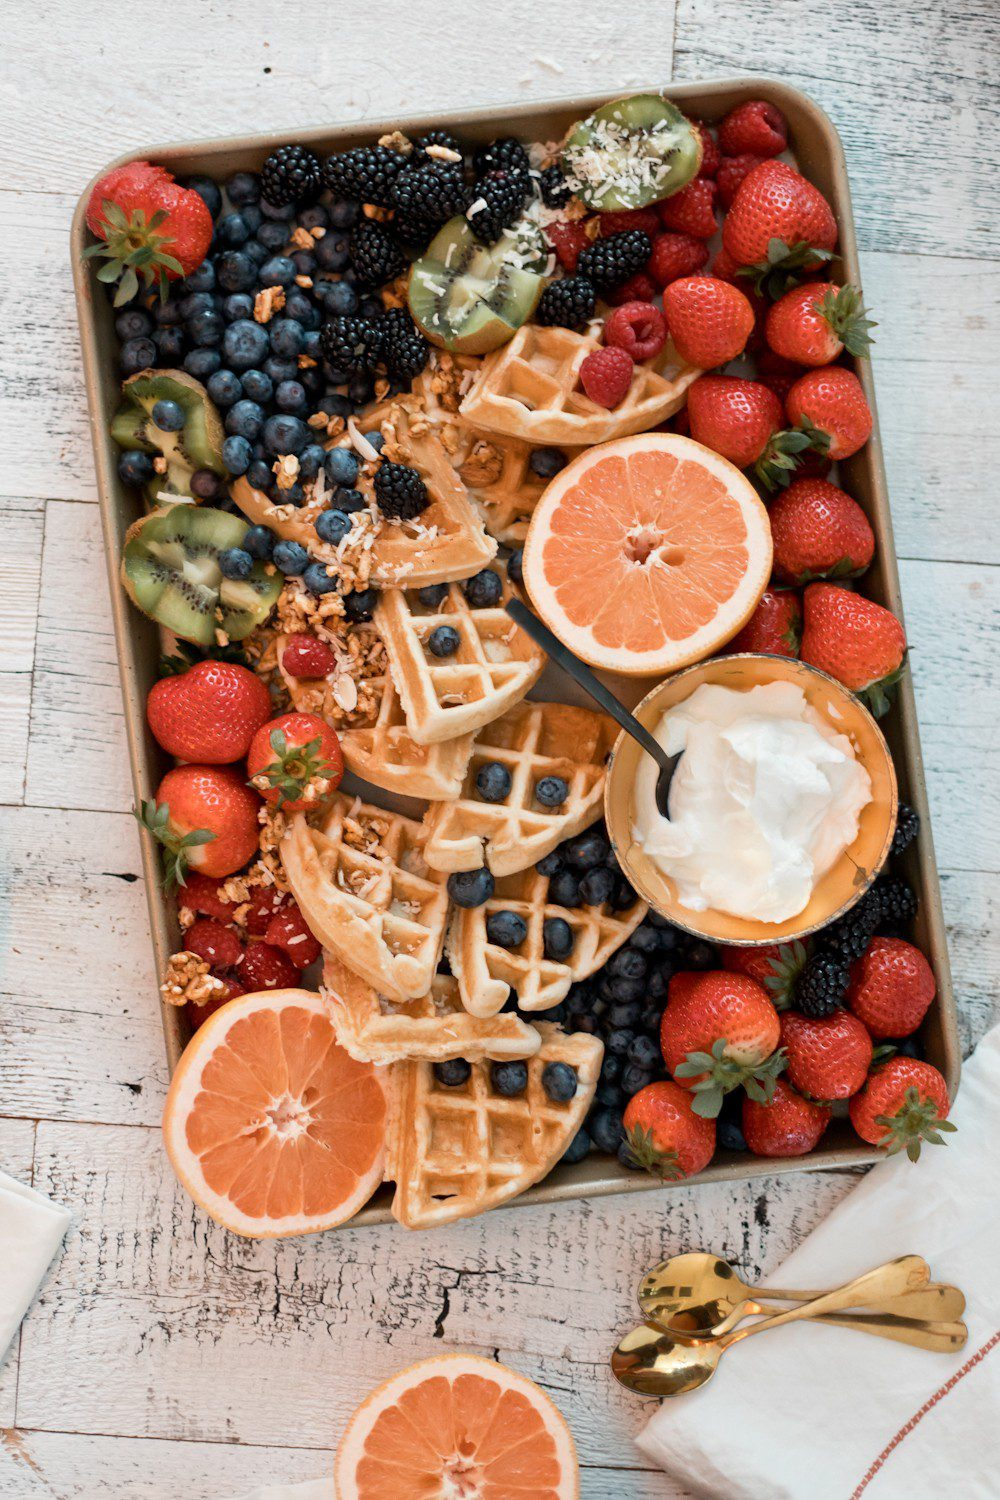 DIY Yogurt Parfait Recipe Ideas with Protein for Kids They'll Love by popular Florida lifestyle blog, Fresh Mommy: image of kiwis, strawberries, blackberries, blueberries, coconut, grapefruits, waffles, and Fage greek yogurt on a tray.